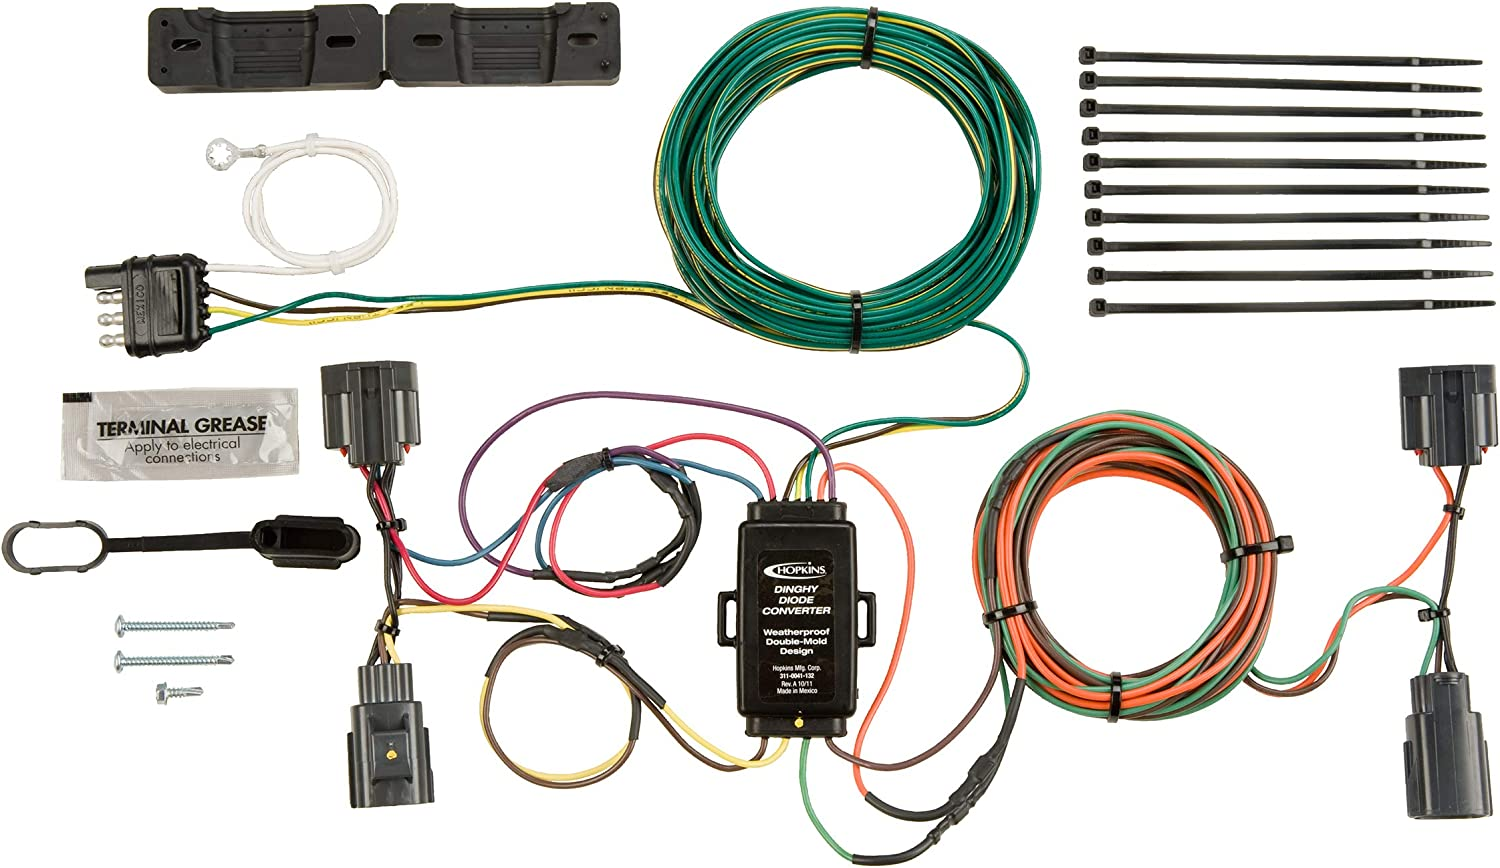 Hopkins 56200 Plug-In Simple Towed Vehicle Wiring Kit on nissan wiring harness, dodge wiring harness, fj cruiser wiring harness, toyota wiring harness, jeep commander wiring harness, jeep cj7 wiring-diagram, jeep wk wiring harness, ford wiring harness, jeep trailer wiring harnesses, jeep wrangler wiring harness connectors, jeep wrangler aftermarket stereo, jeep liberty wiring harness, 1995 jeep wiring harness, jeep wrangler wiring diagram, mazda wiring harness, jeep xj wiring harness, radio wiring harness, jeep wrangler trailer wiring, jeep cj wiring harness, jeep tow wiring harness,